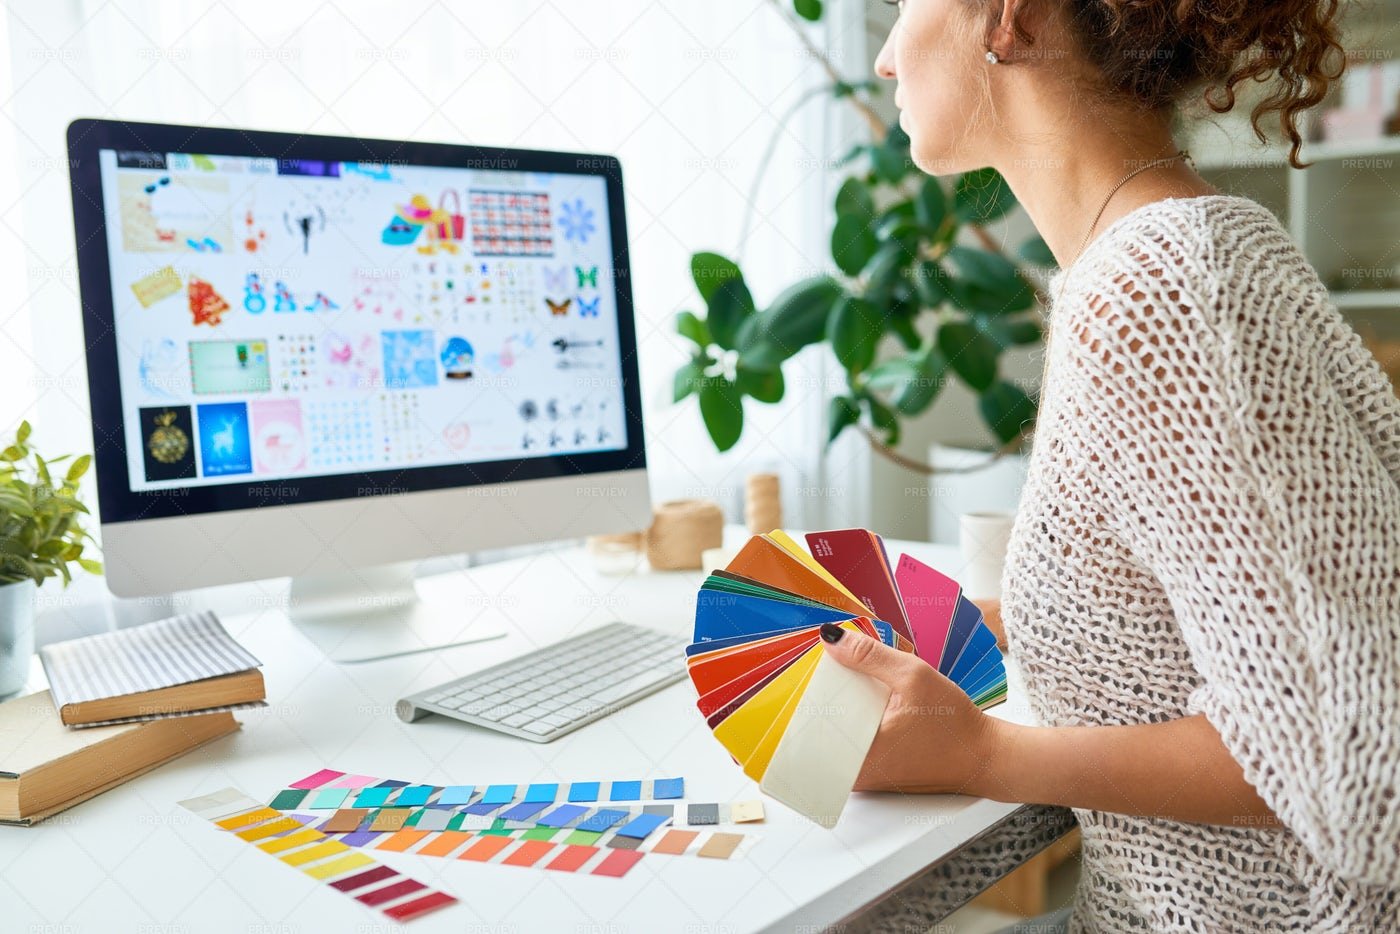 Creative Designer Working From Home: Stock Photos